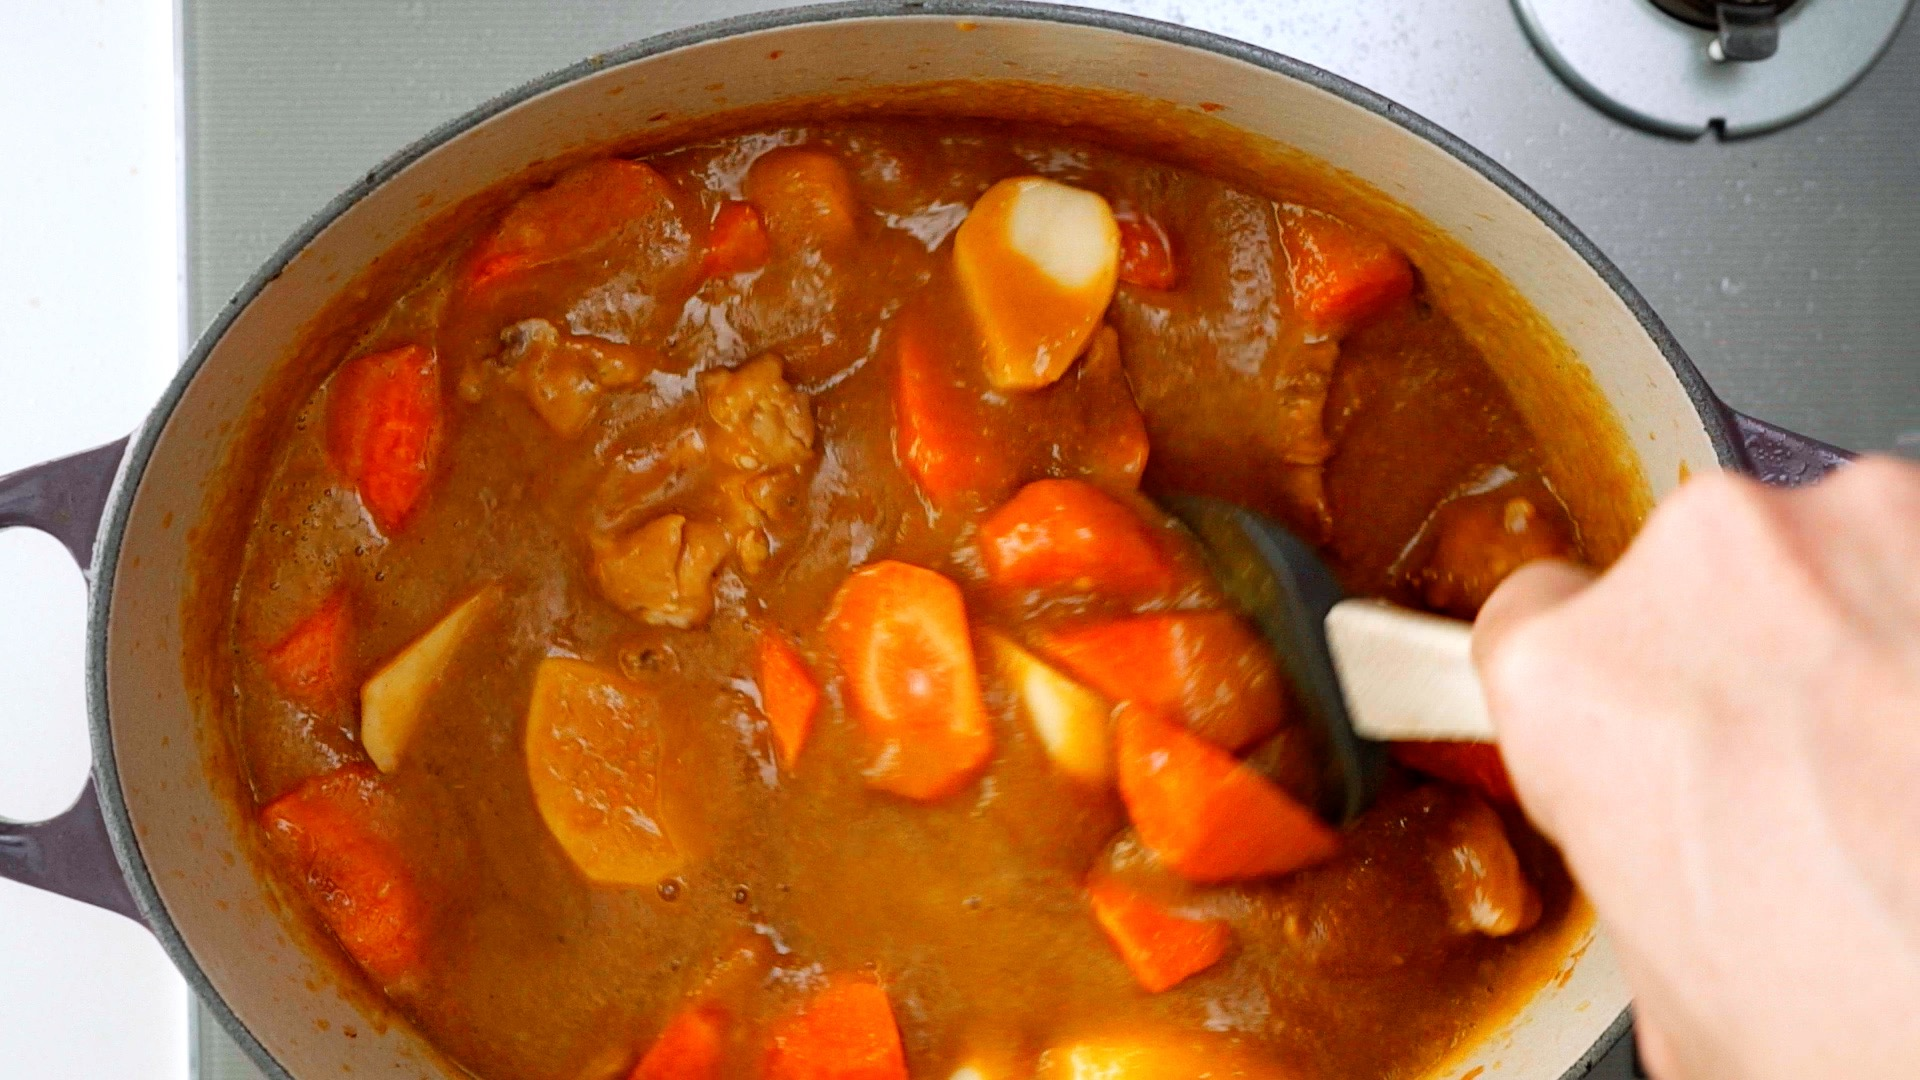 Stirring potatoes, carrots and chicken into the Japanese curry sauce.